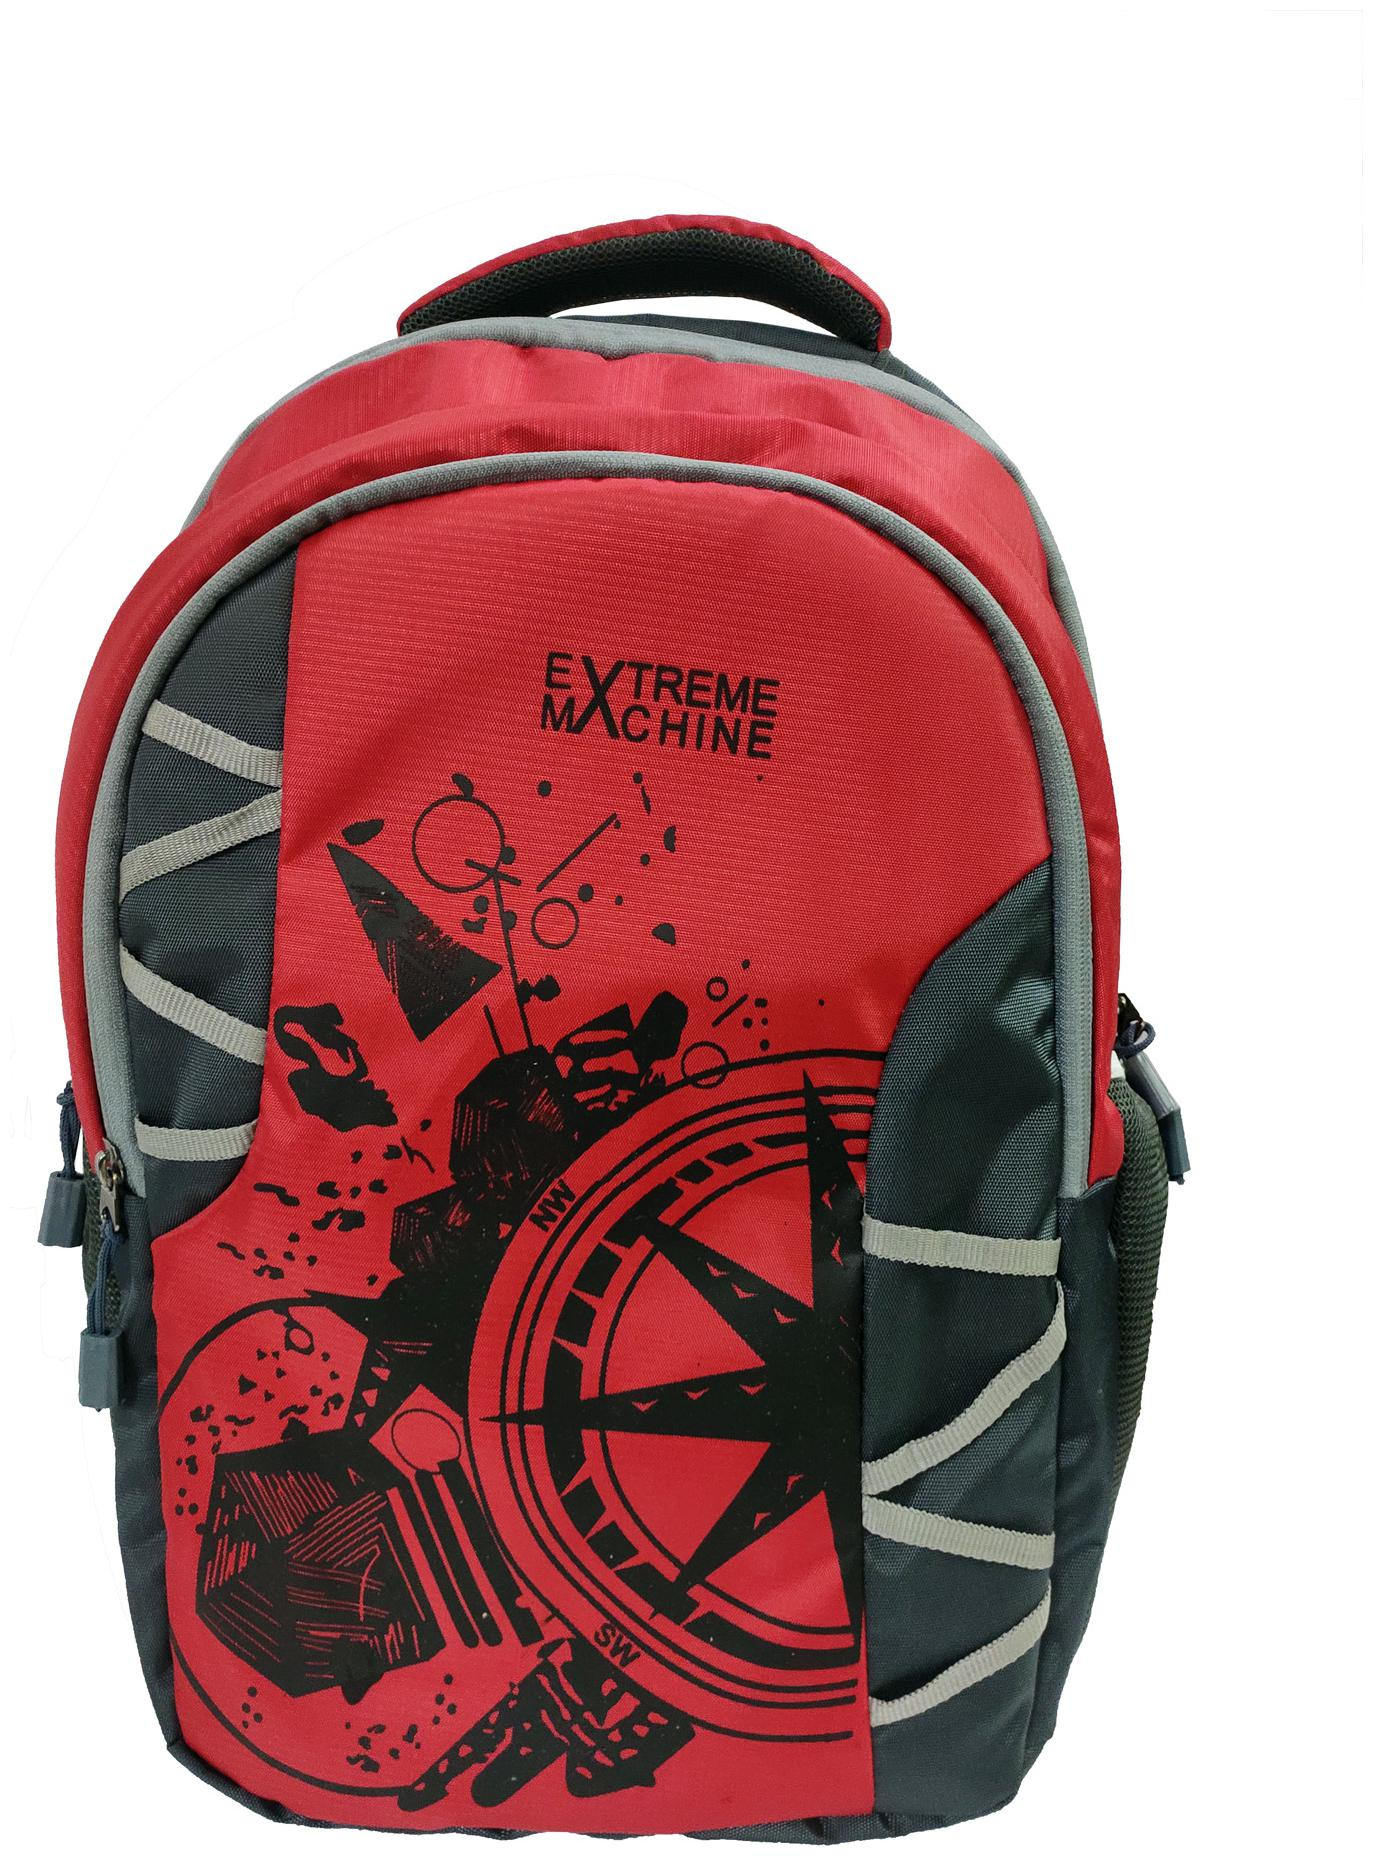 EXTREME MACHINE 32L Red Waterproof Laptop Backpack